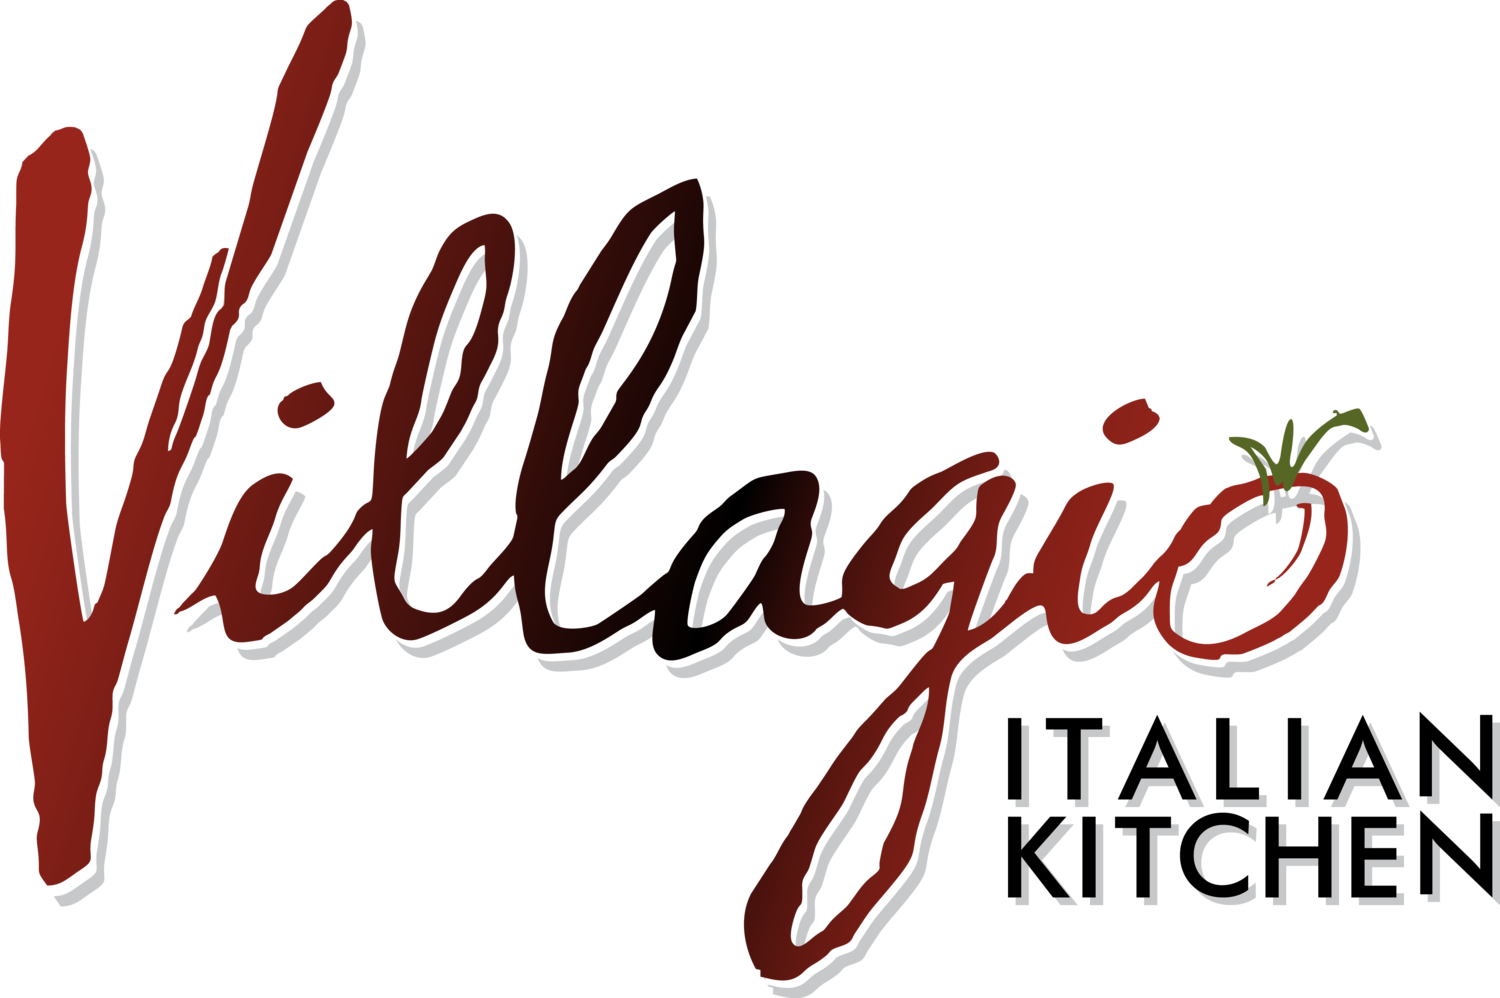 Villagio Italian Kitchen